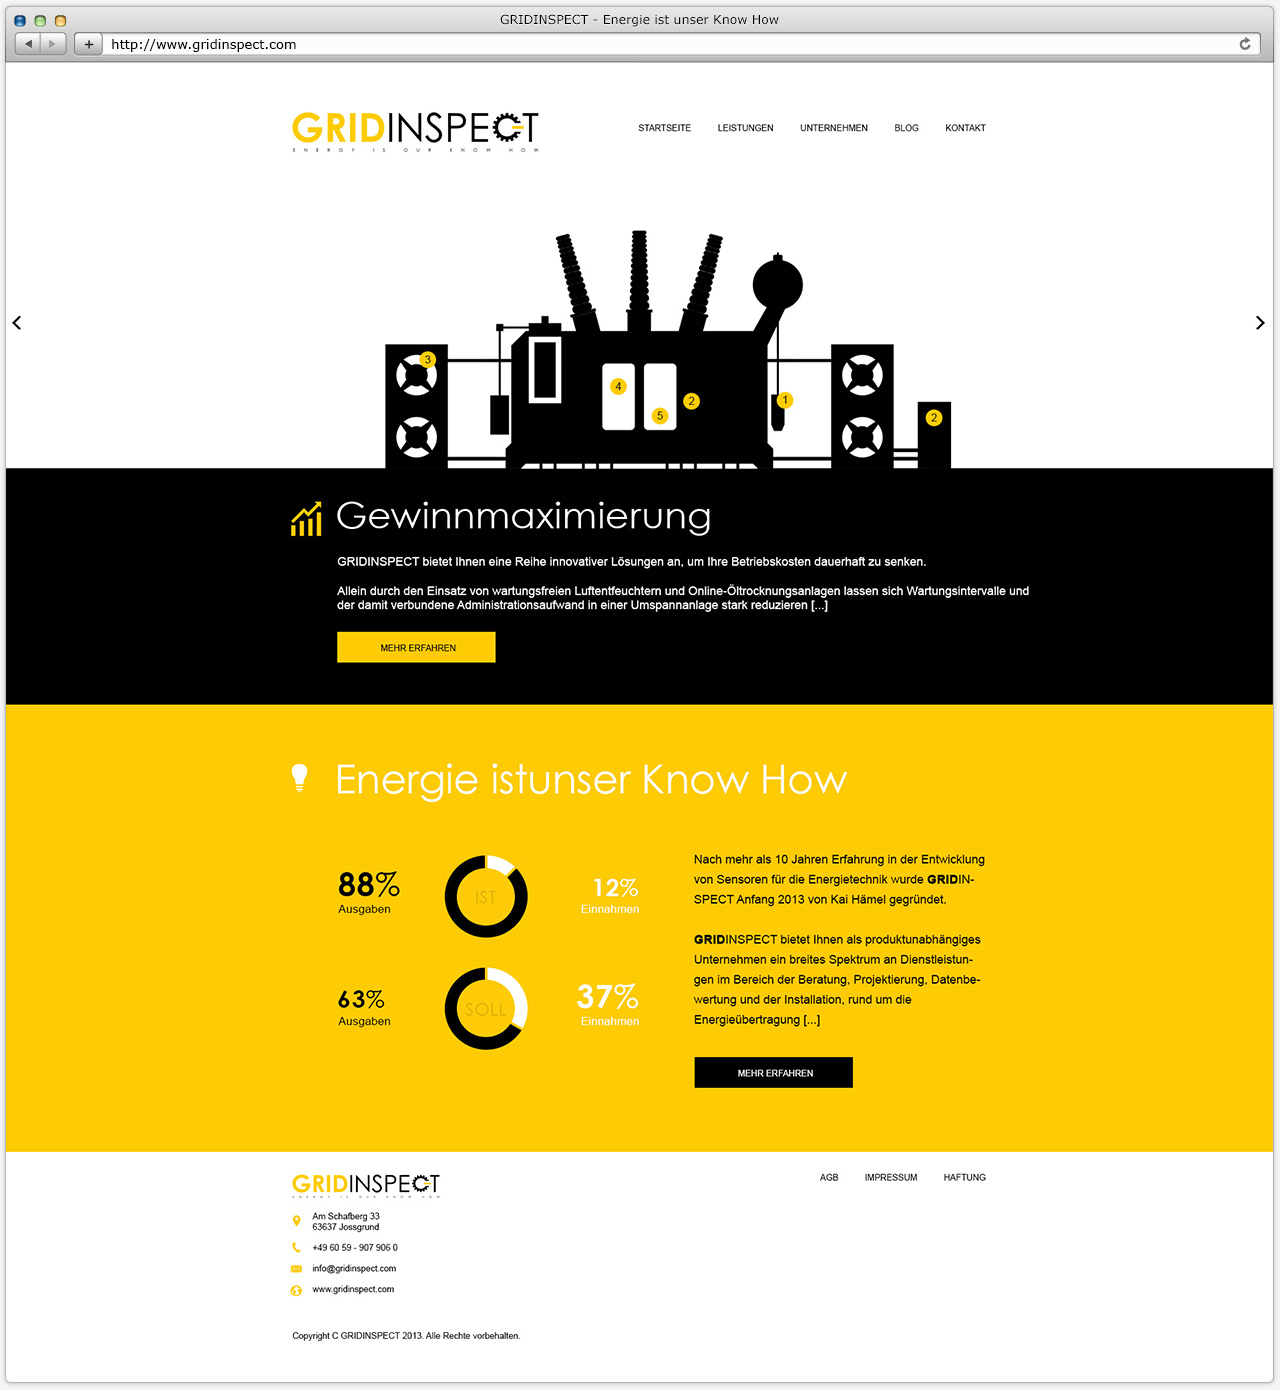 gridinspect_website_home